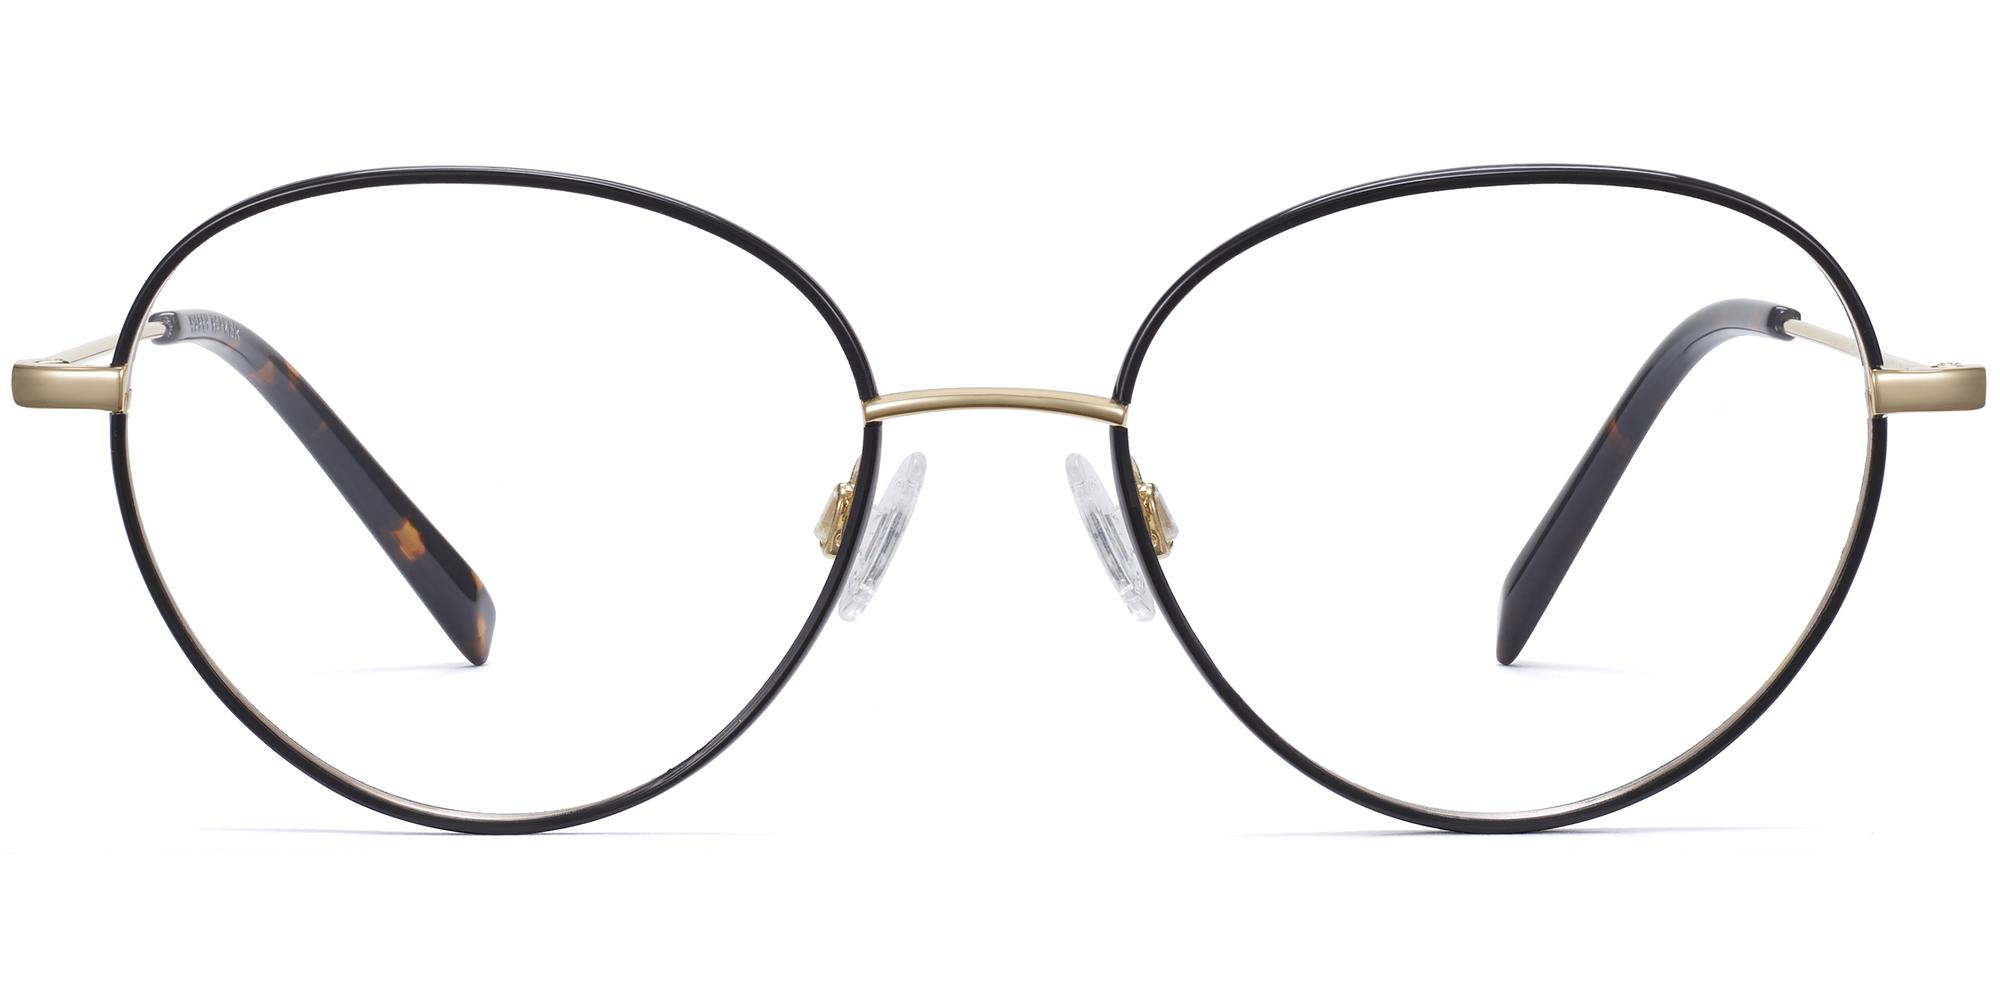 Front View Image of Arlen Eyeglasses Collection, by Warby Parker Brand, in Jet Black With Polished Gold Color